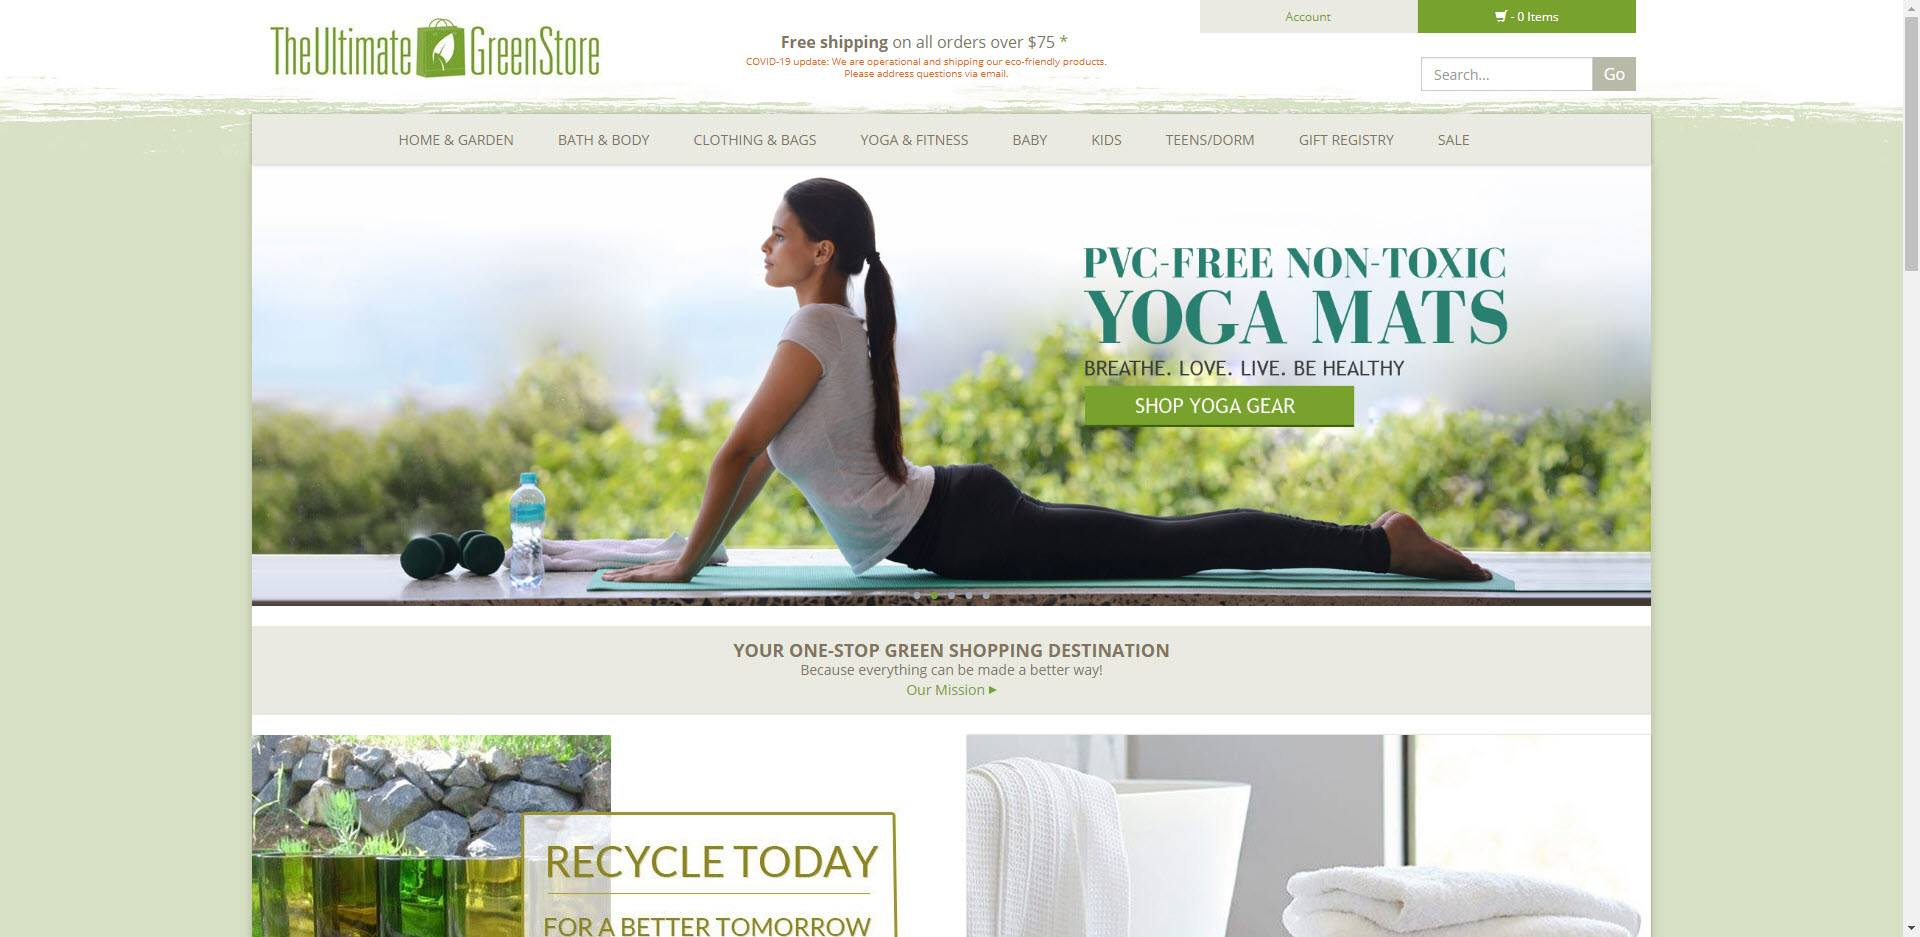 eco friendly affiliate programs - The ulimate green store